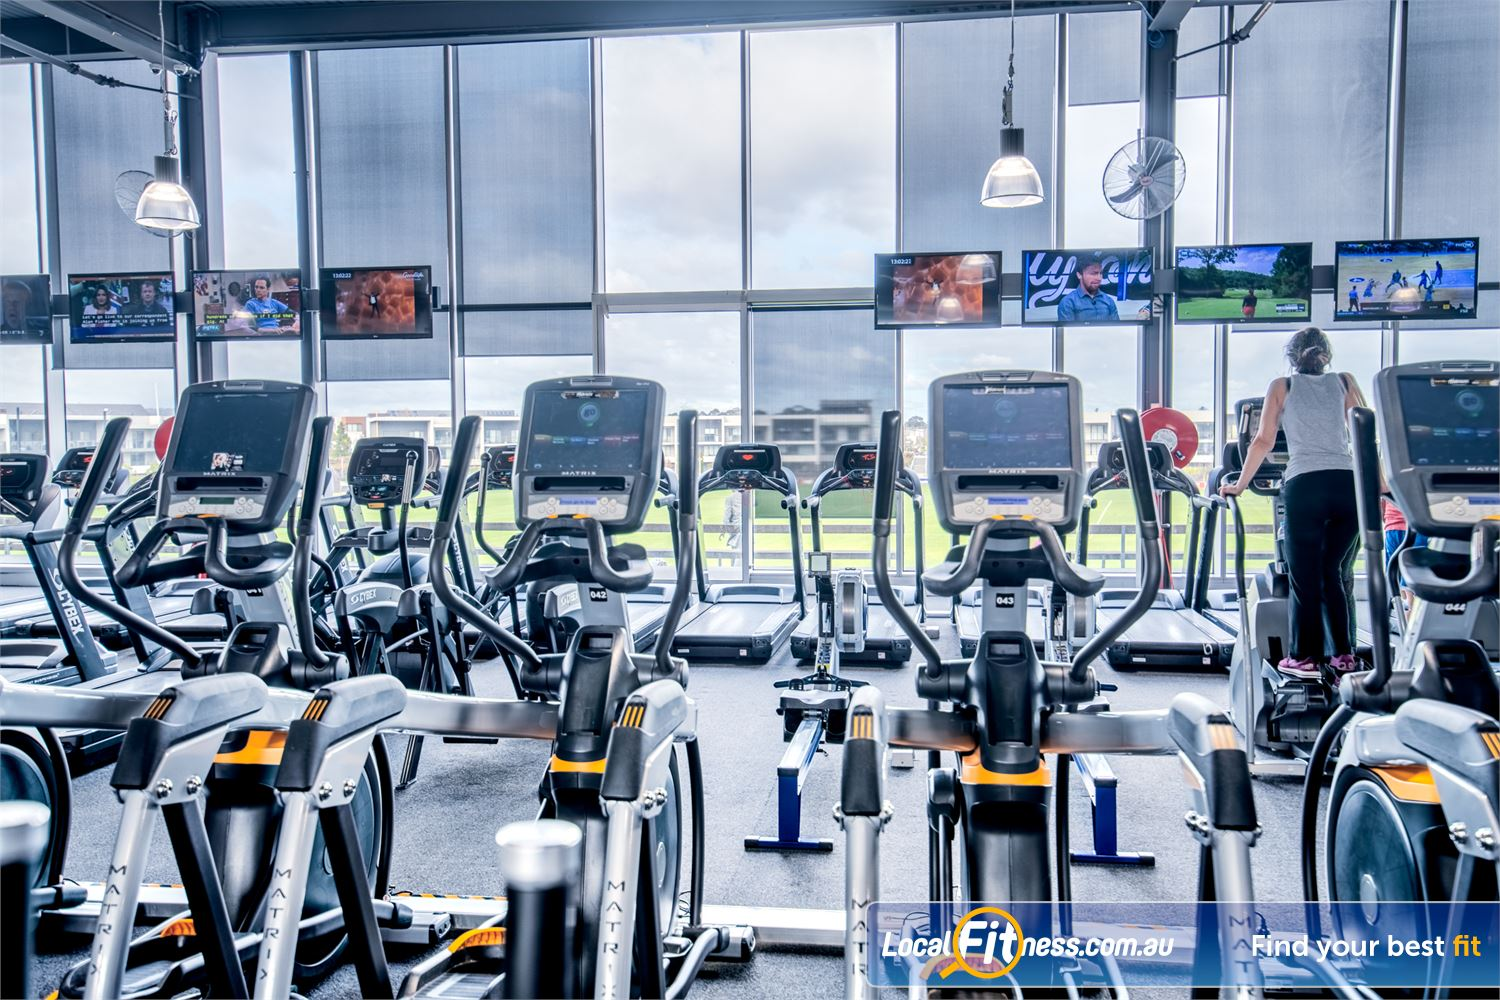 Goodlife Health Clubs Waverley Park Near Noble Park State of the art Ascent trainers from MATRIX Fitness.